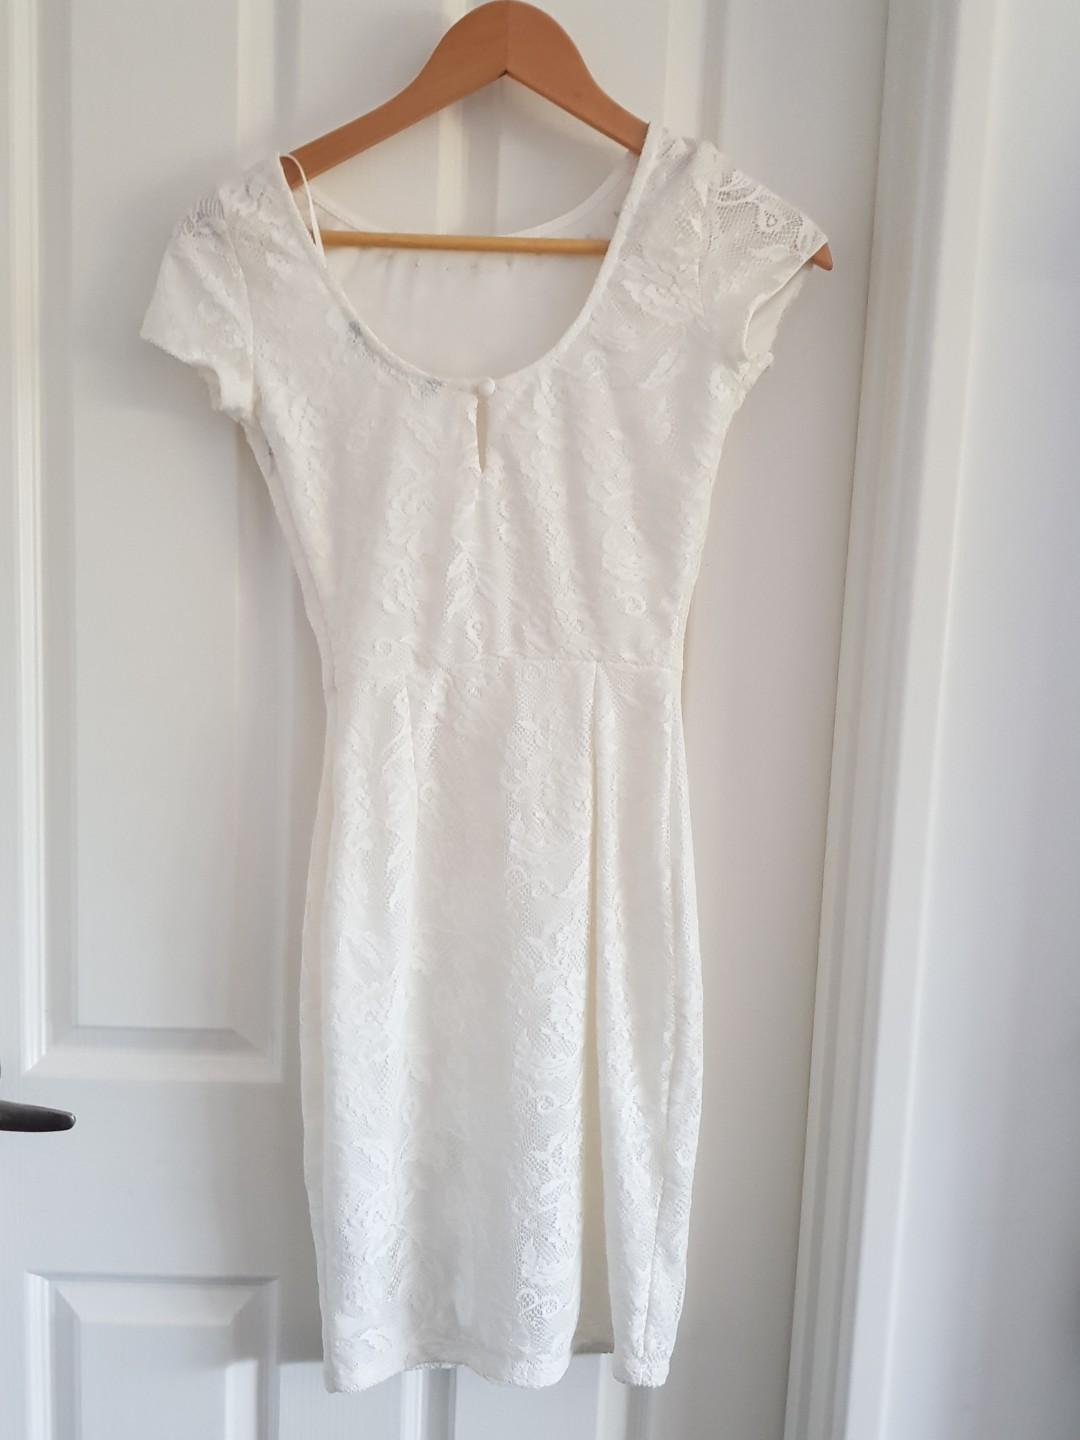 Zara white lace dress